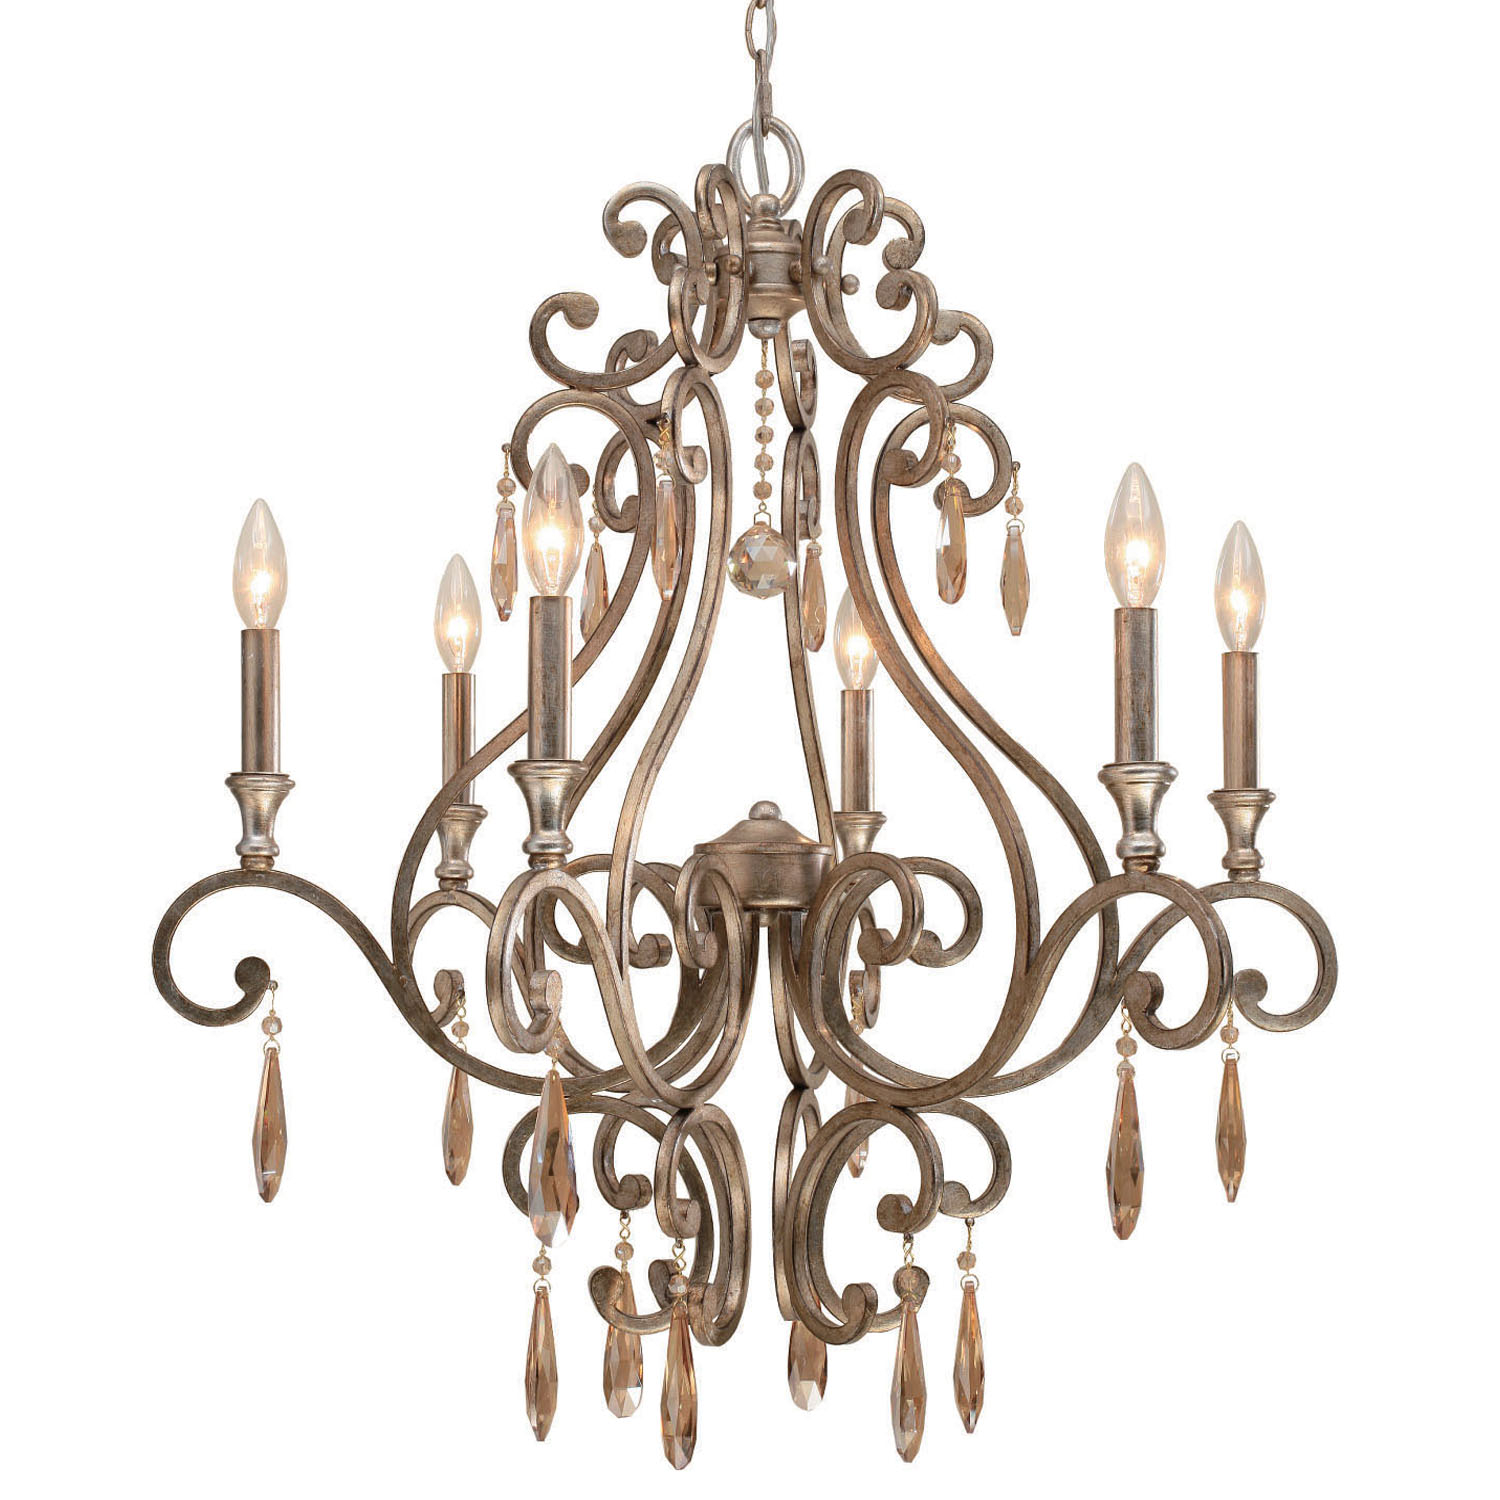 Best victorian dining room chandeliers reviews ratings for Popular dining room chandeliers